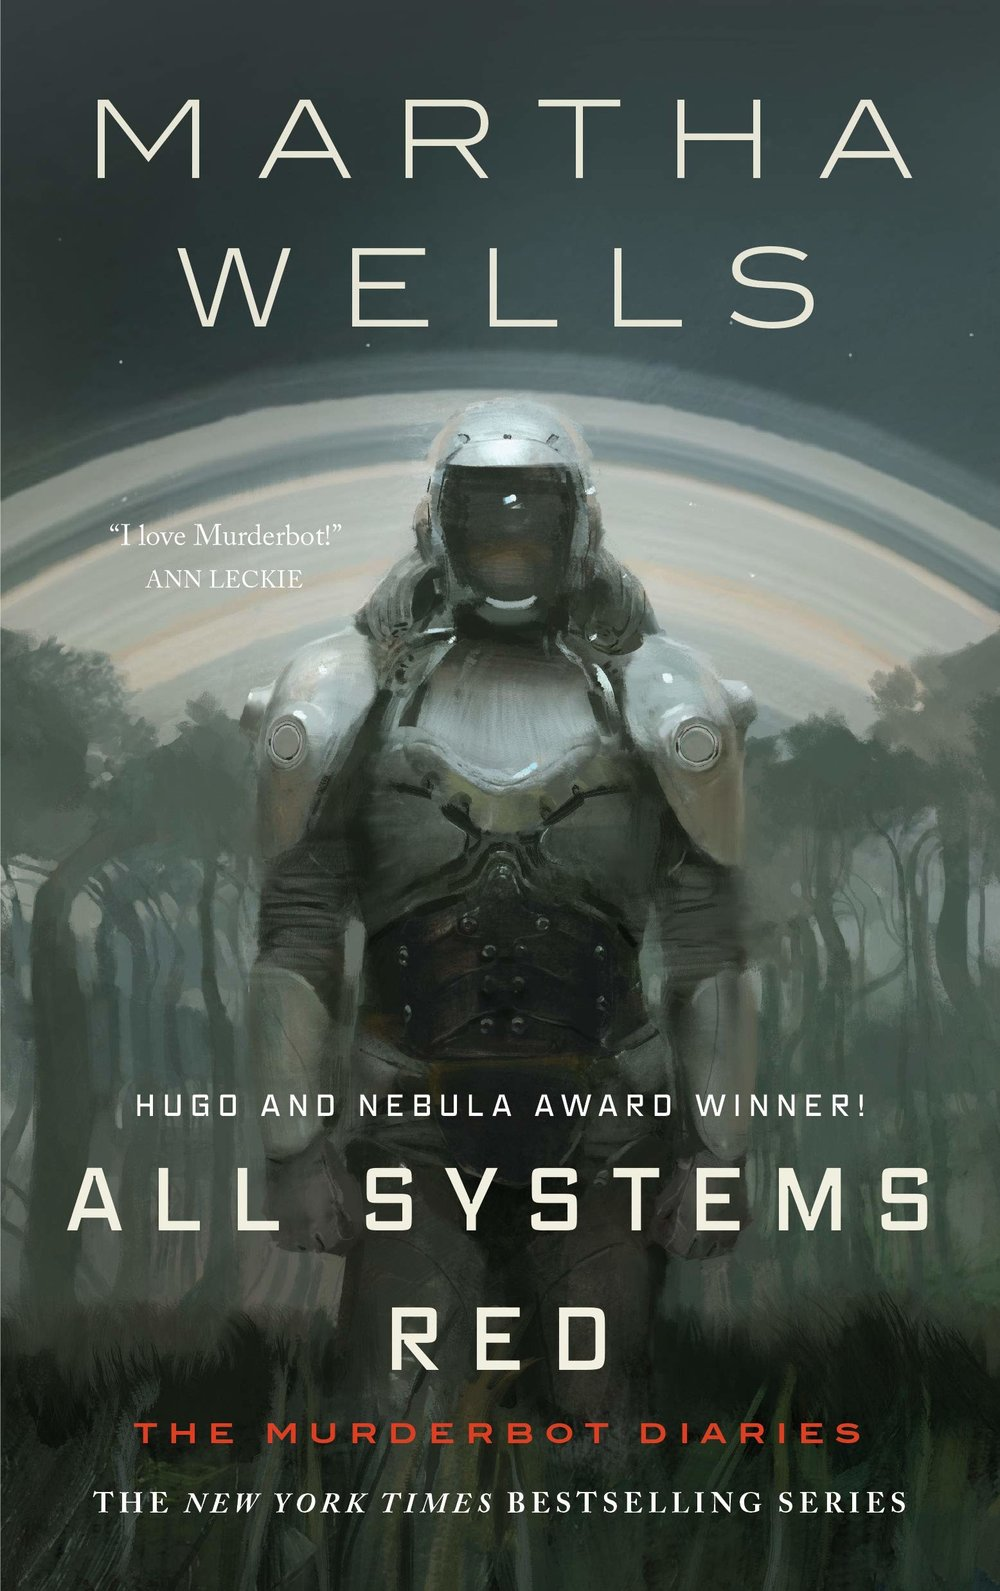 All Systems Red_Martha Wells.jpg